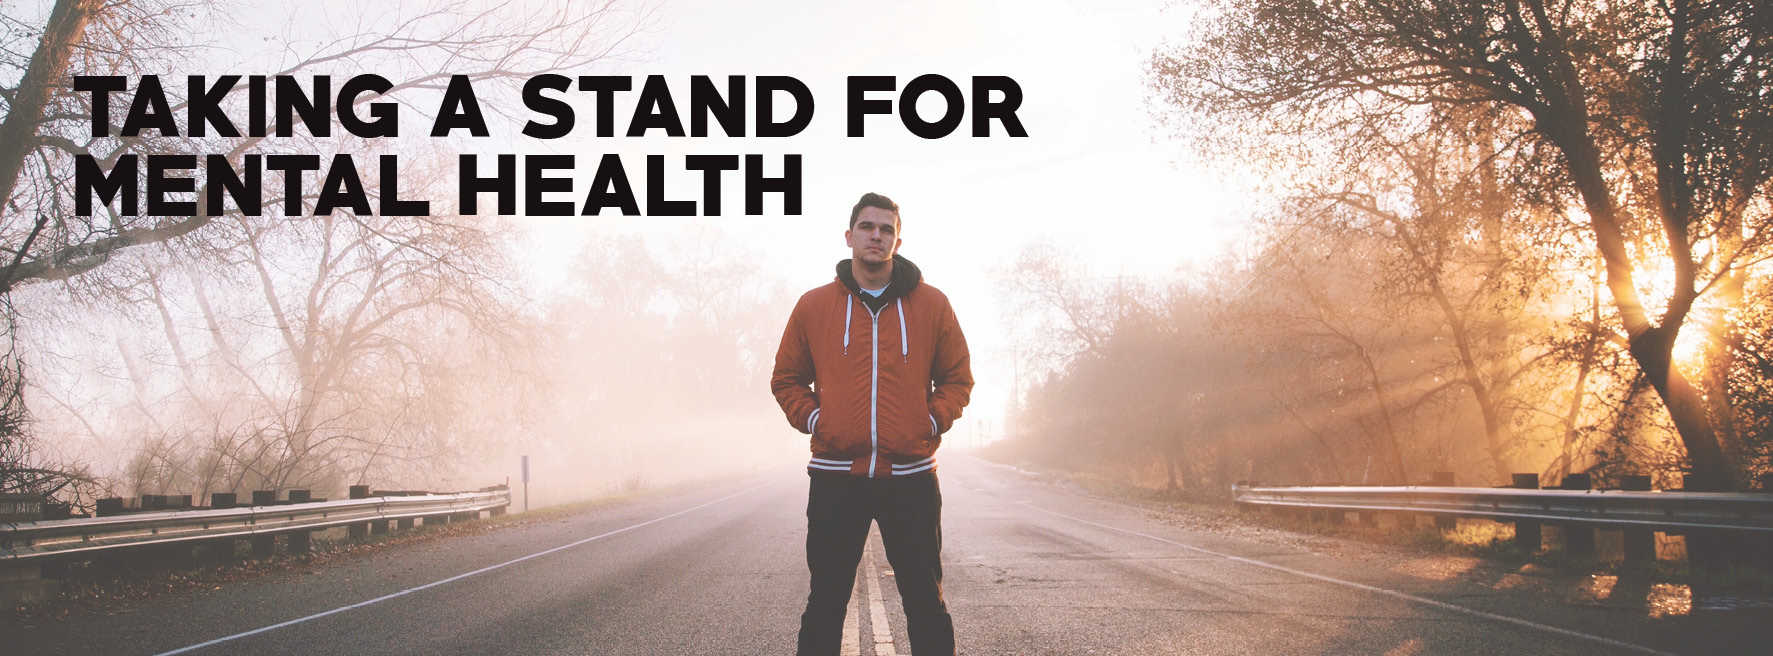 Taking a Stand for Mental Health